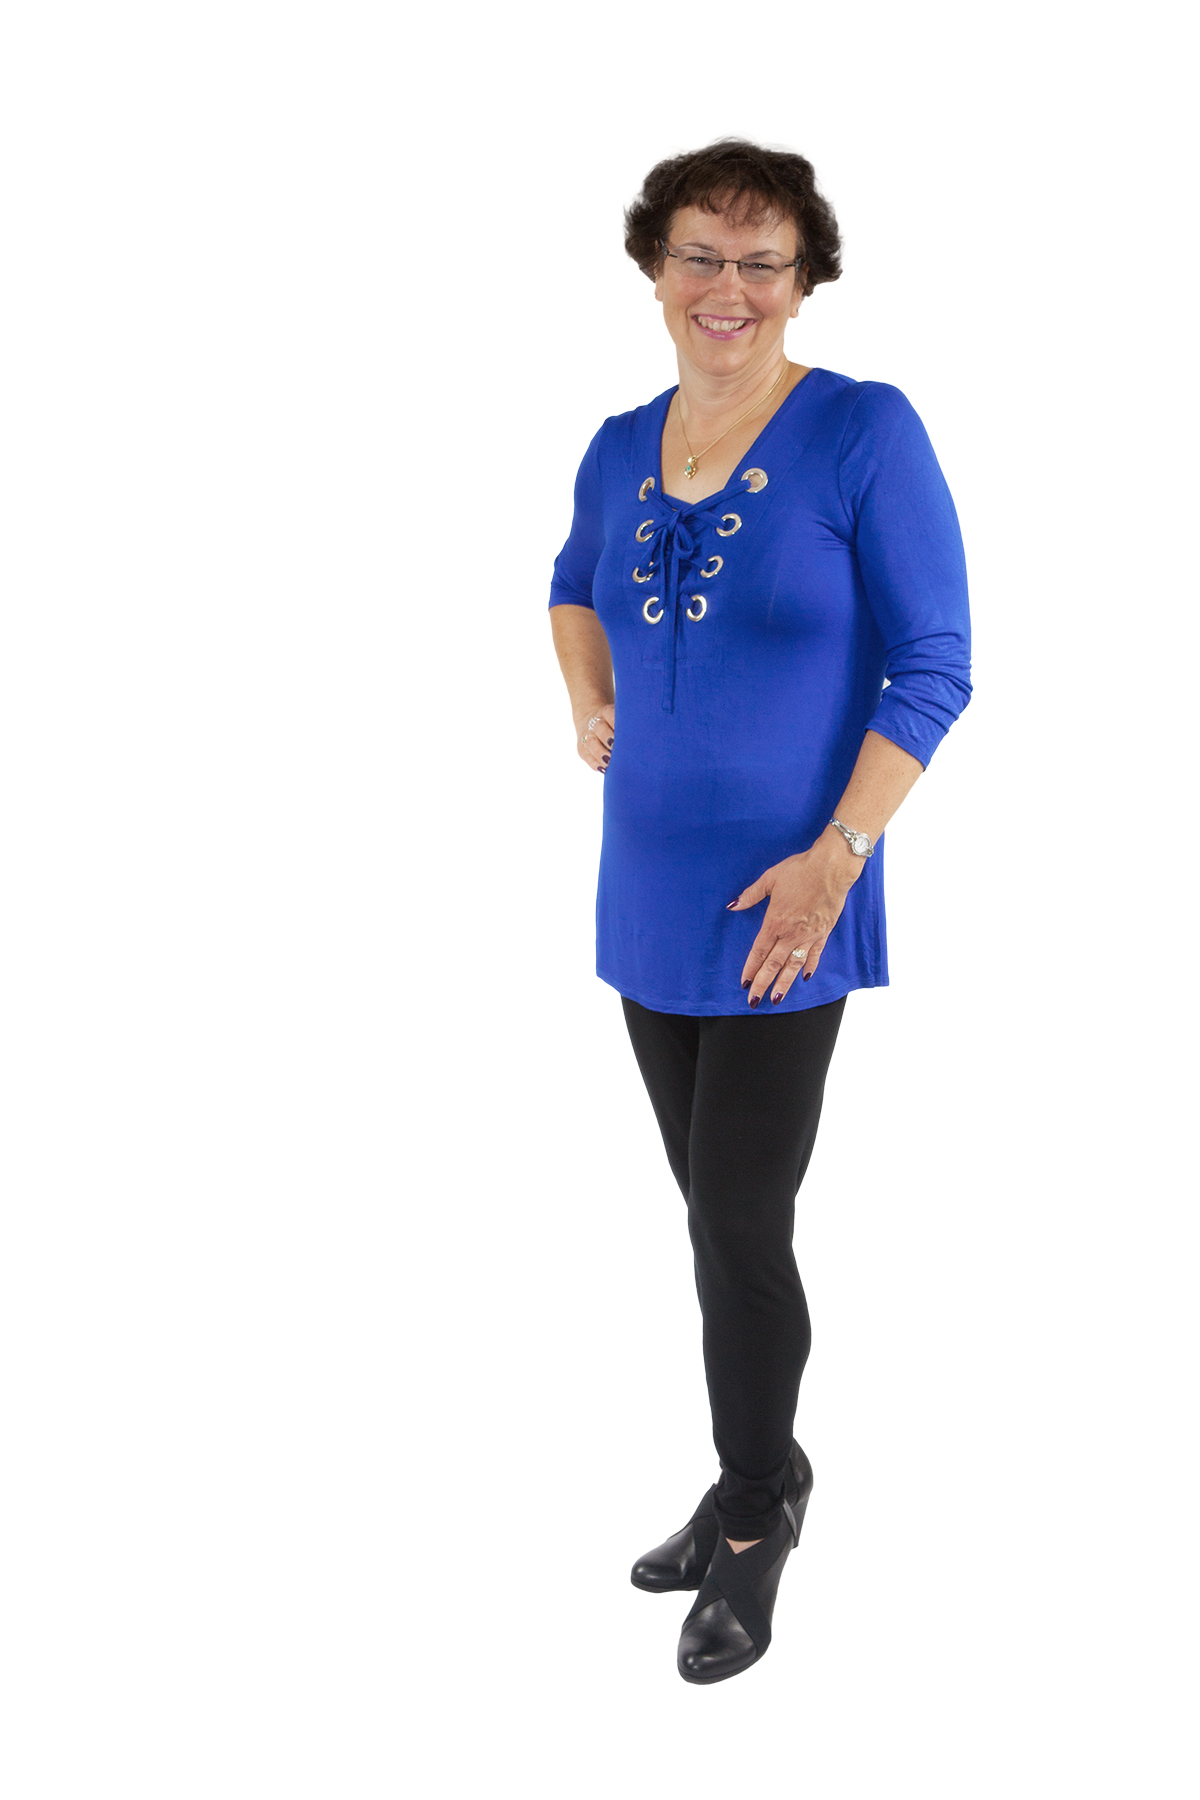 linda t nuyou weight loss clinic after